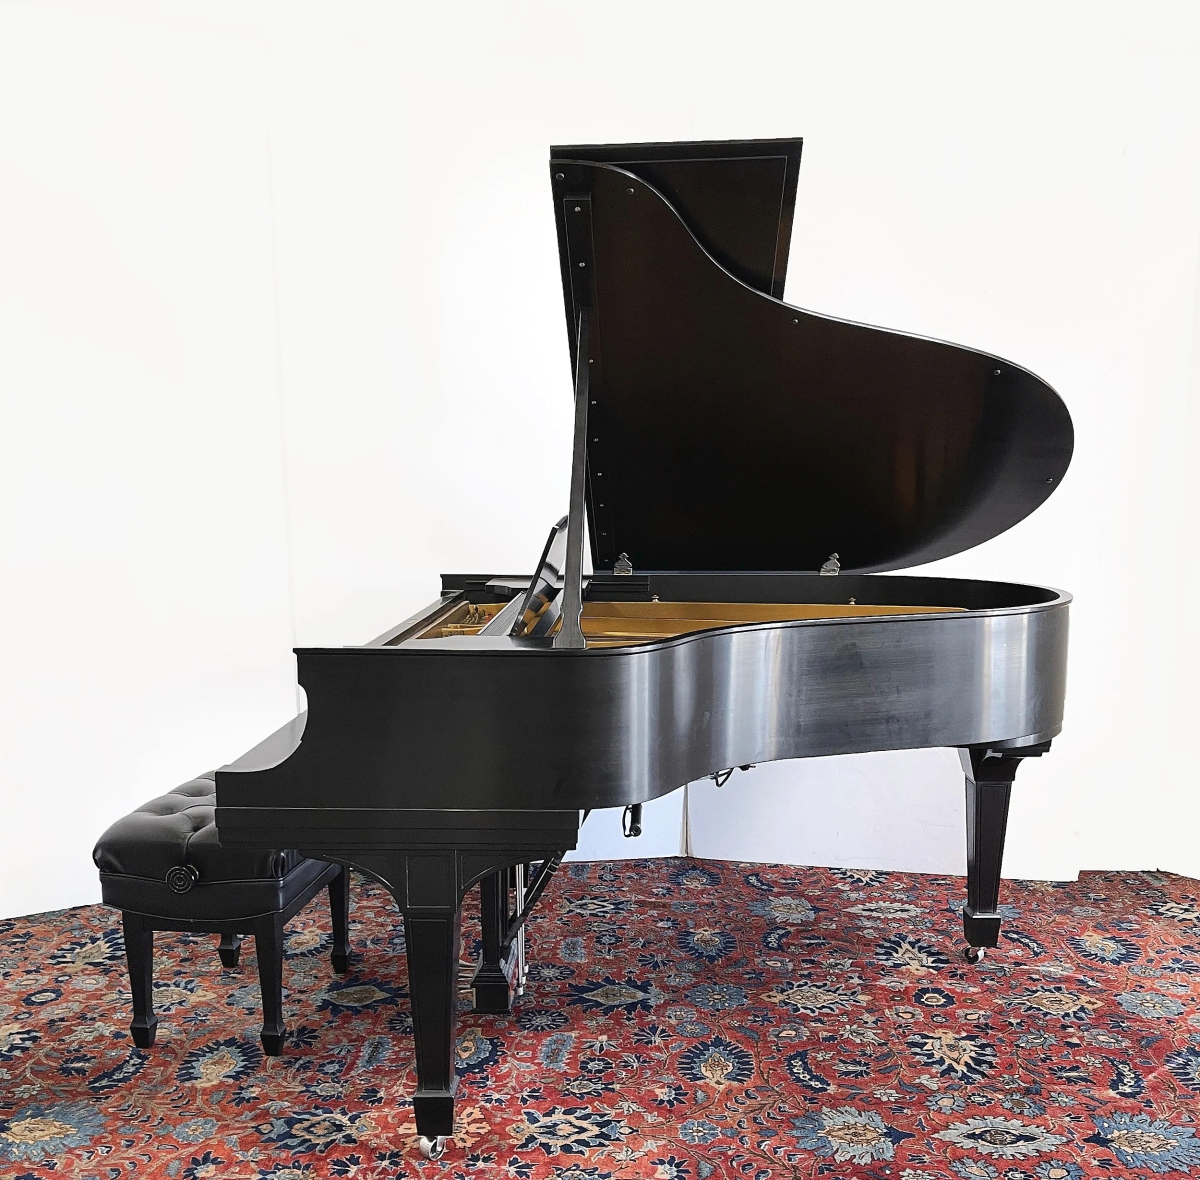 The Steinway Model O piano sold to an internet bidder for $11,250.